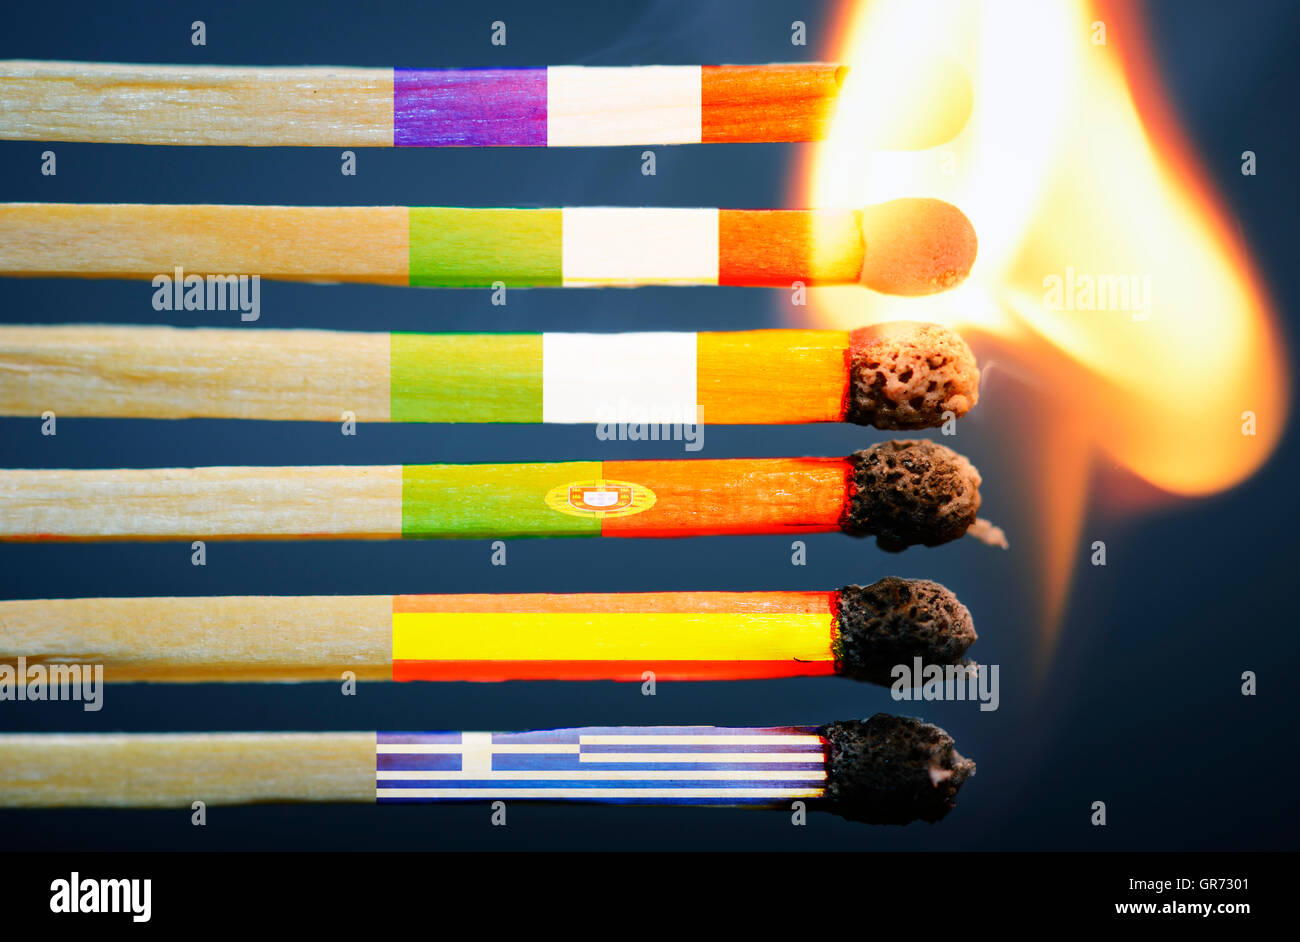 Burning Matches With European Flags, Greek Debt Crisis - Stock Image